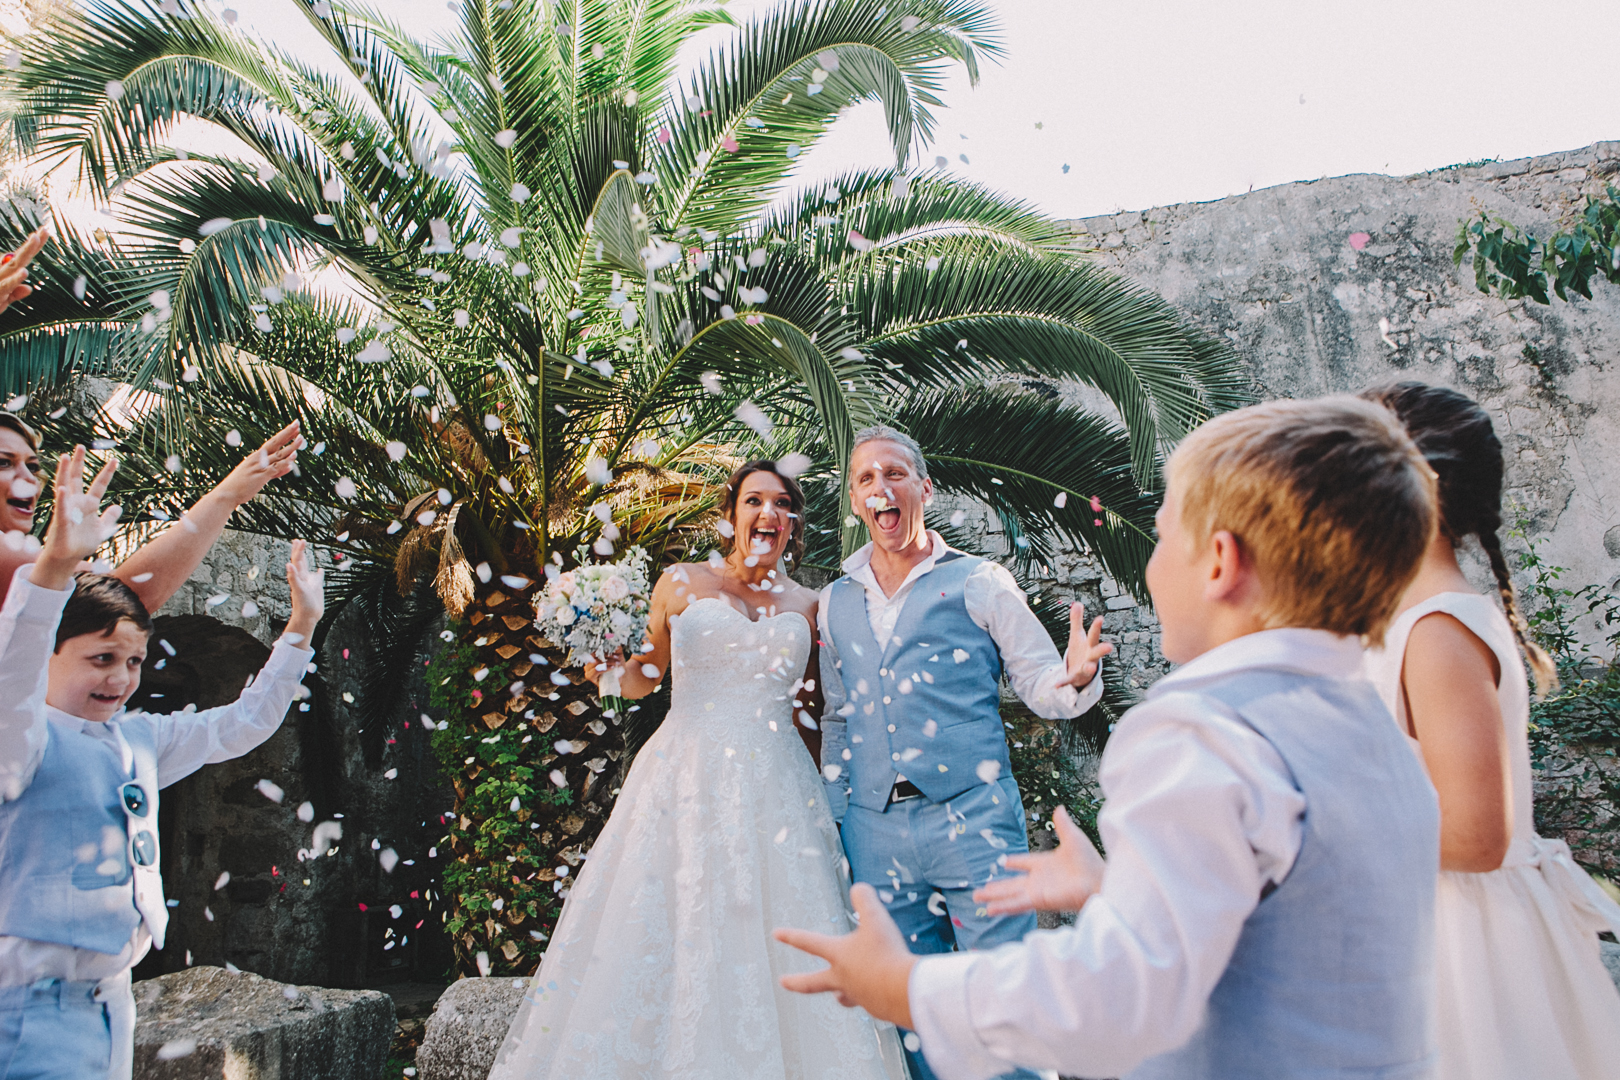 Married in Hvar